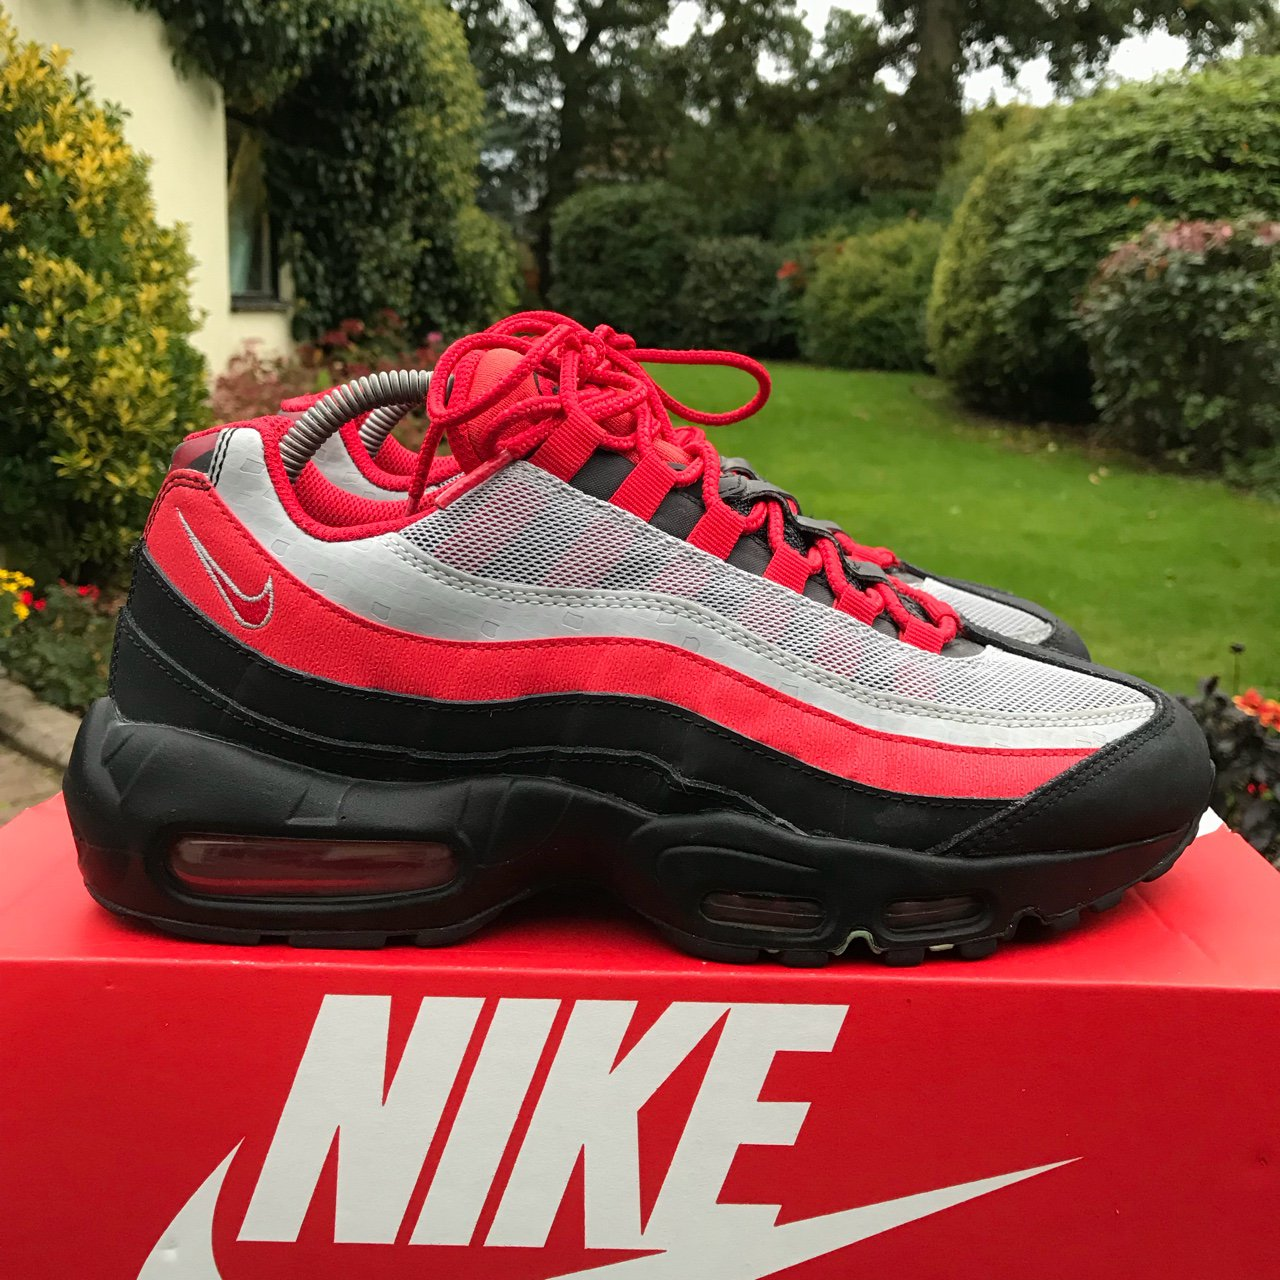 c5553ca860 Nike Air Max 95 Liverpool FC trainers - 9/10 great condition - Depop